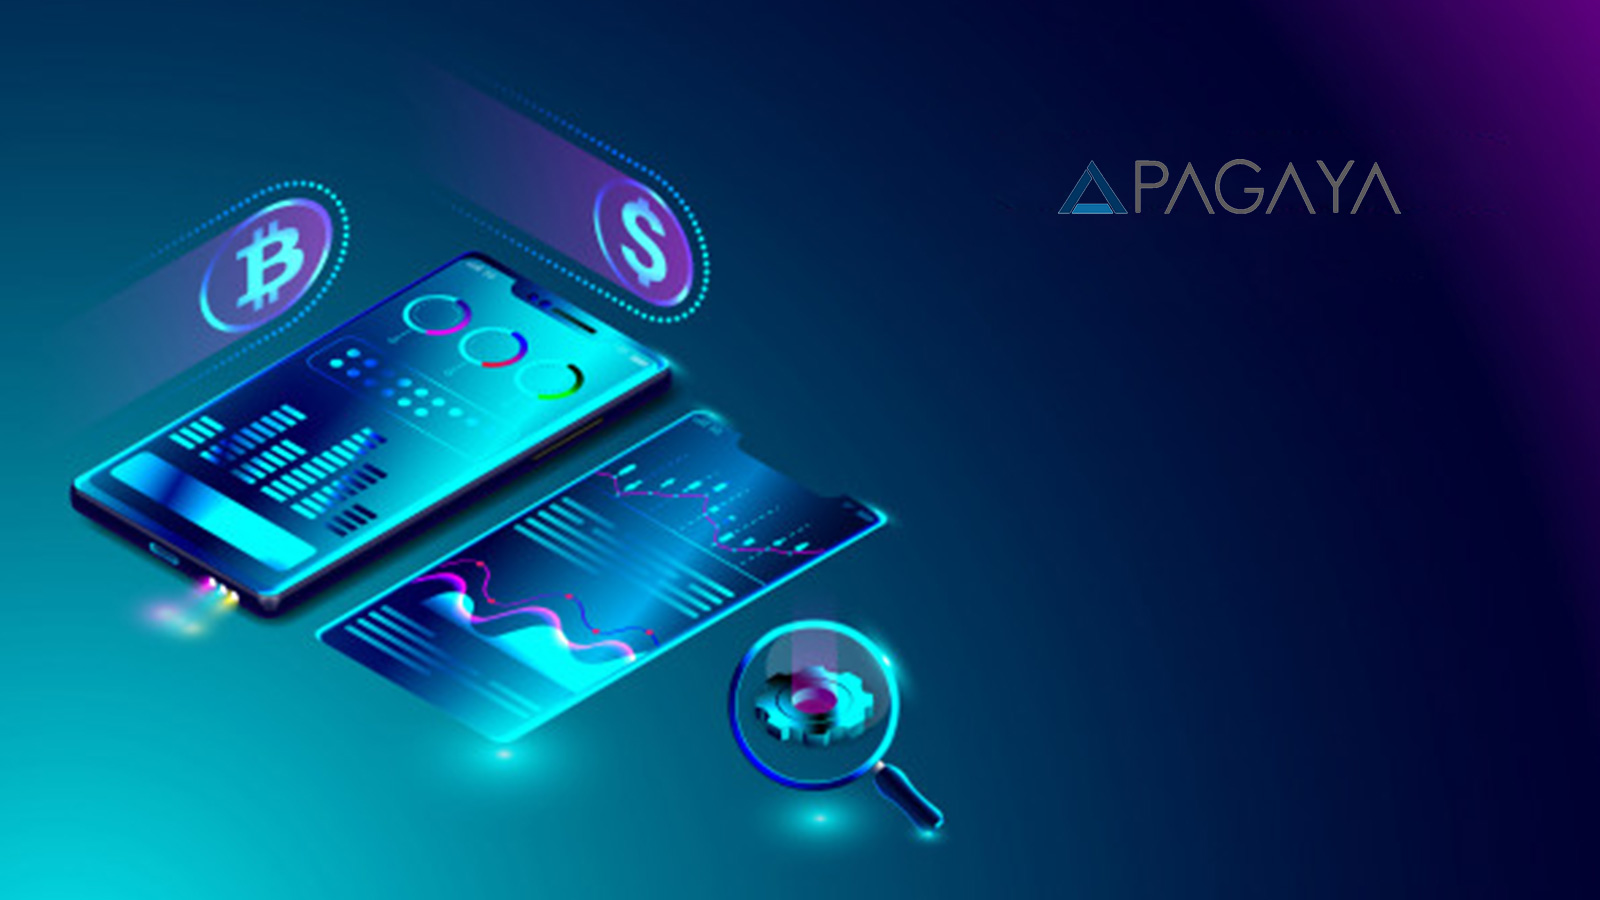 Pagaya Announces Second-Ever $100 Million ABS Fully-Managed by AI